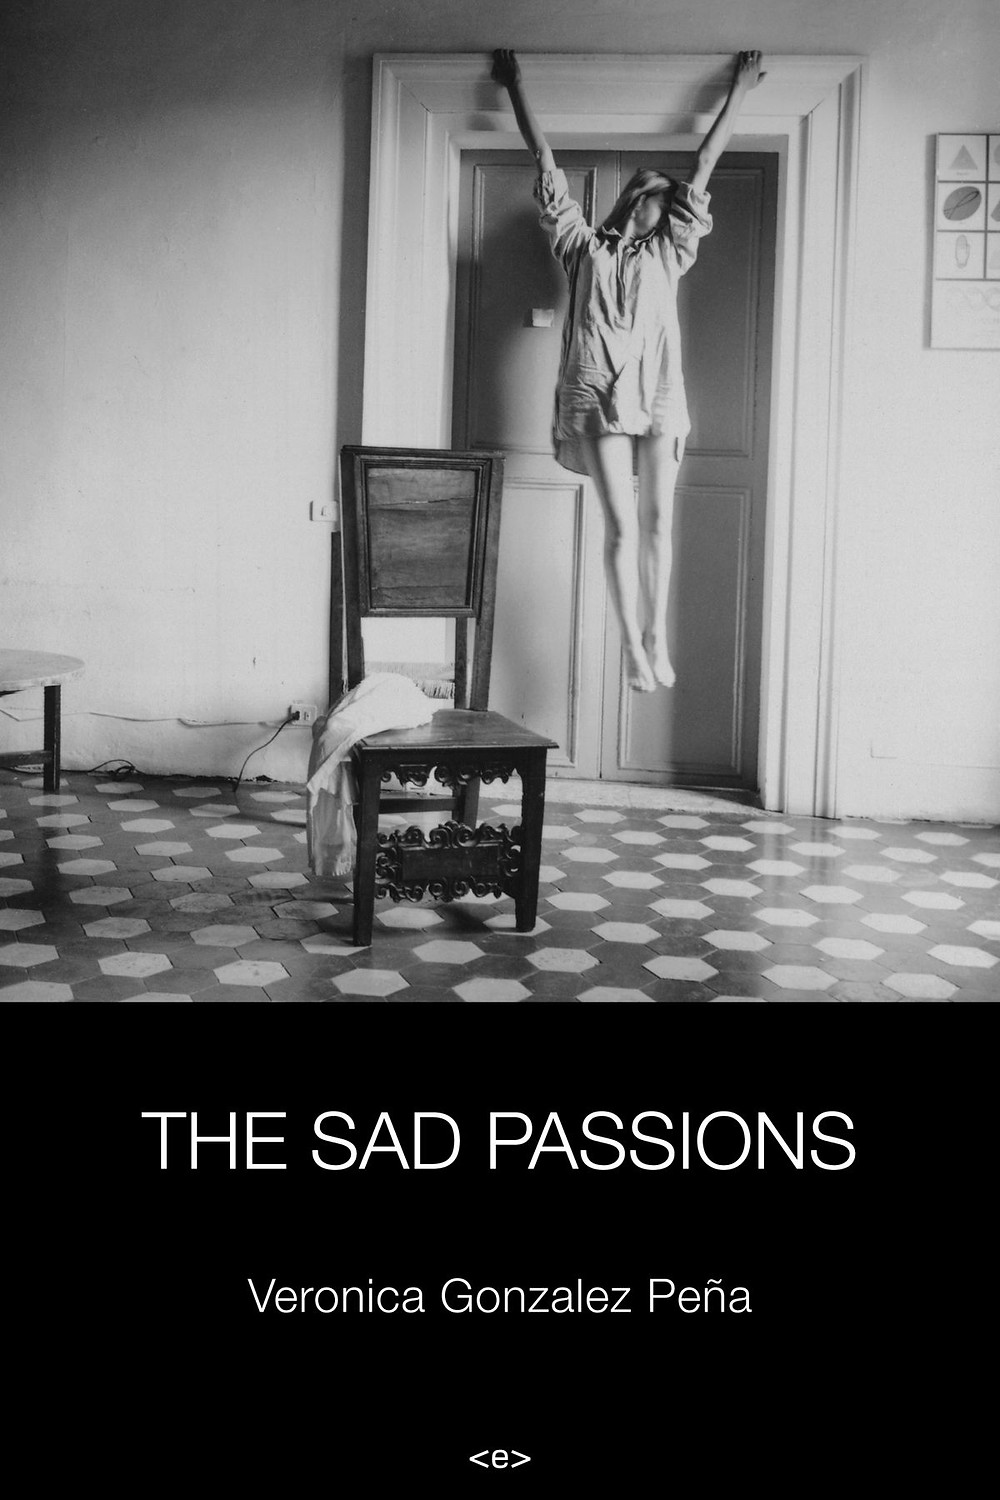 The Sad Passions by Veronica Gonzalez Pena